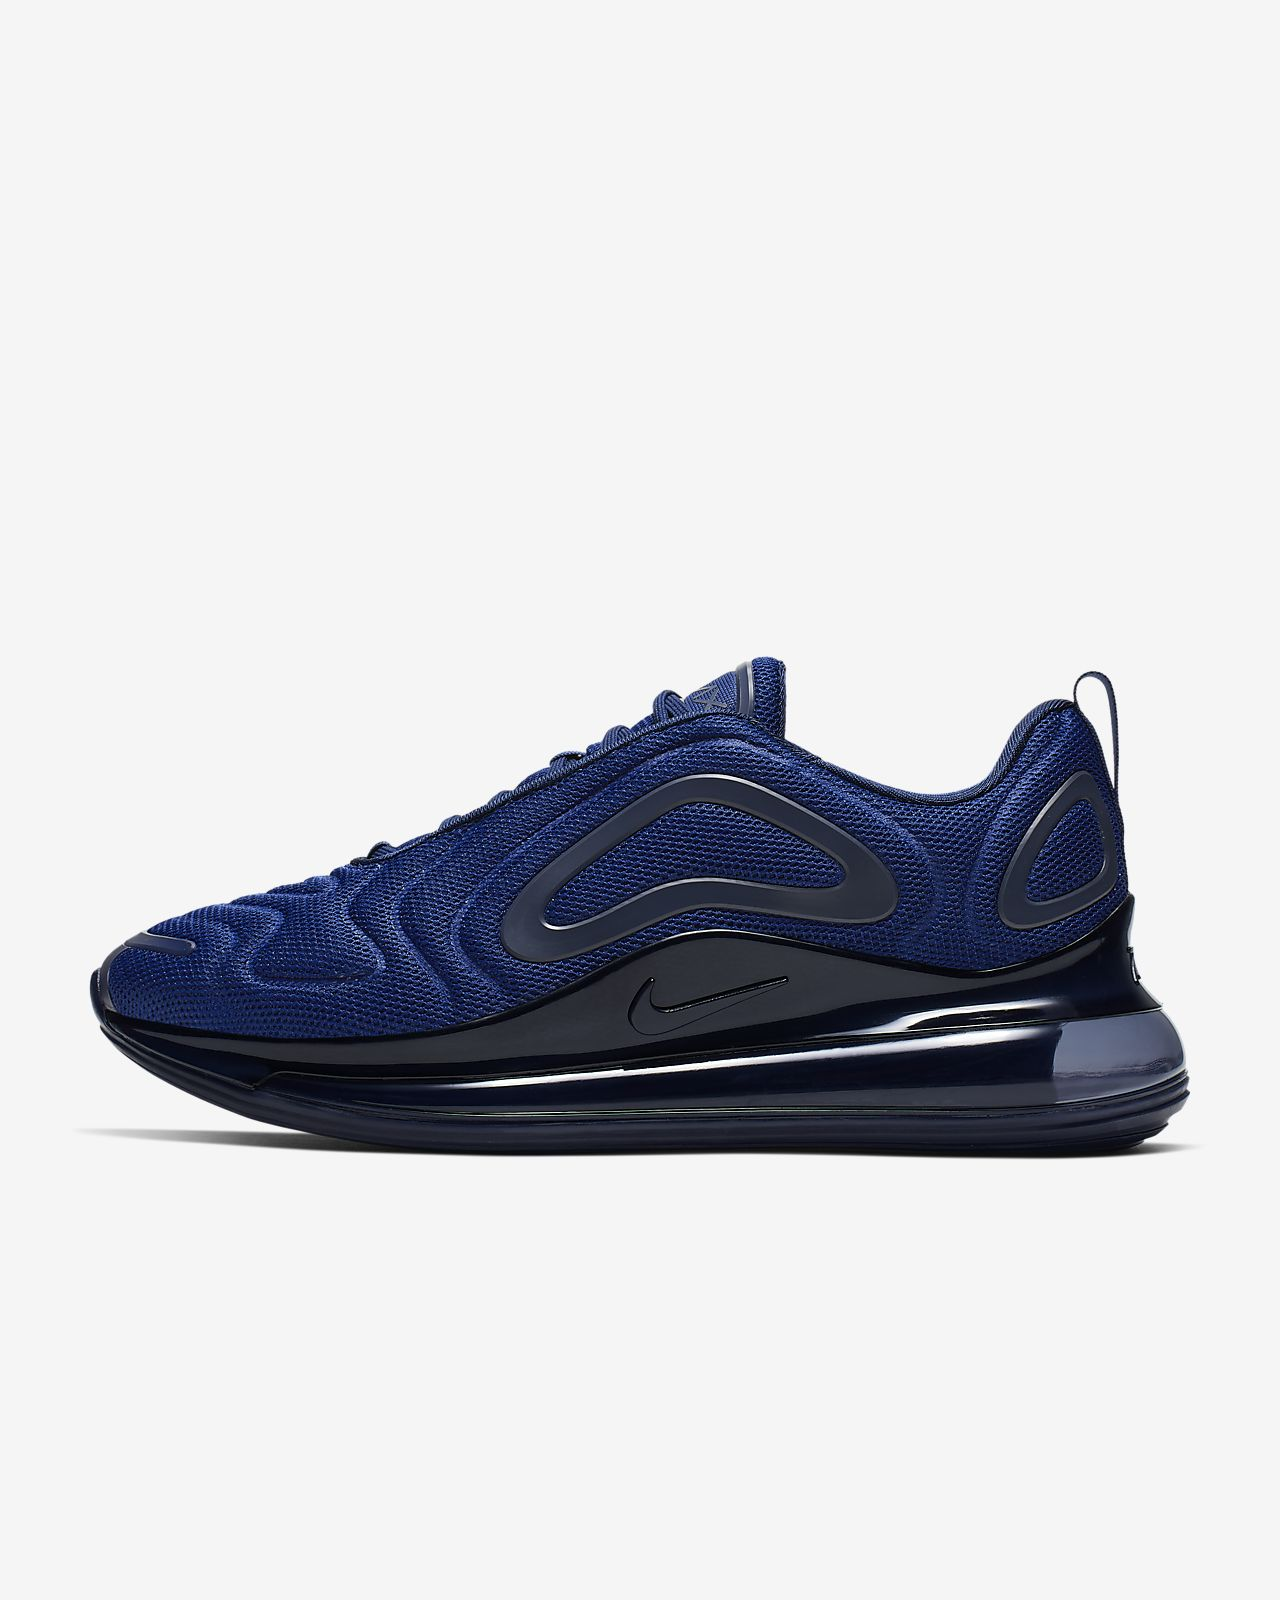 Vente De Mode Brillant Nike Air Max Max Hot Chaussure De